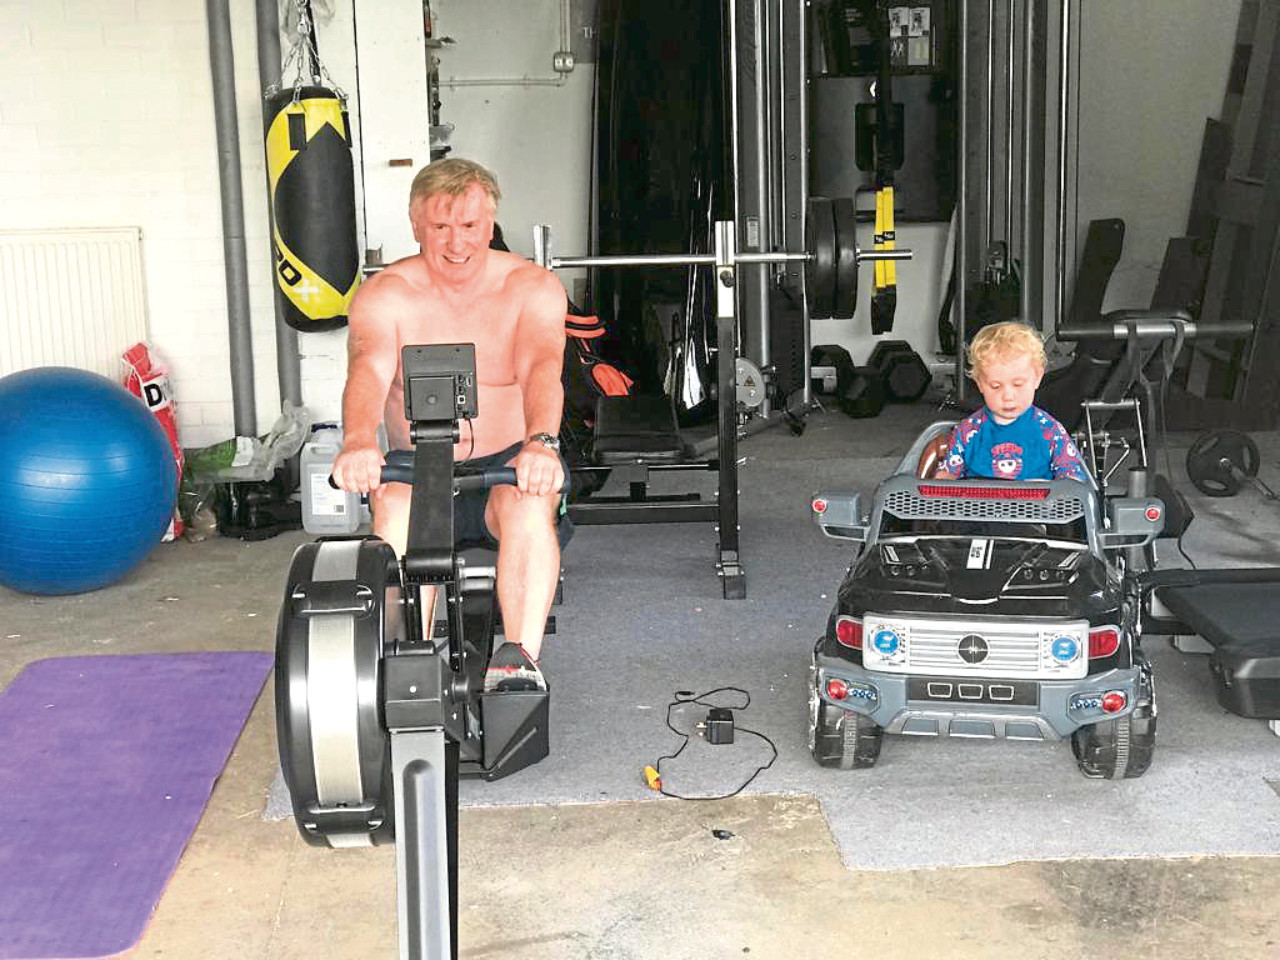 Adventurer John Davidson in training along with son Lochlann.